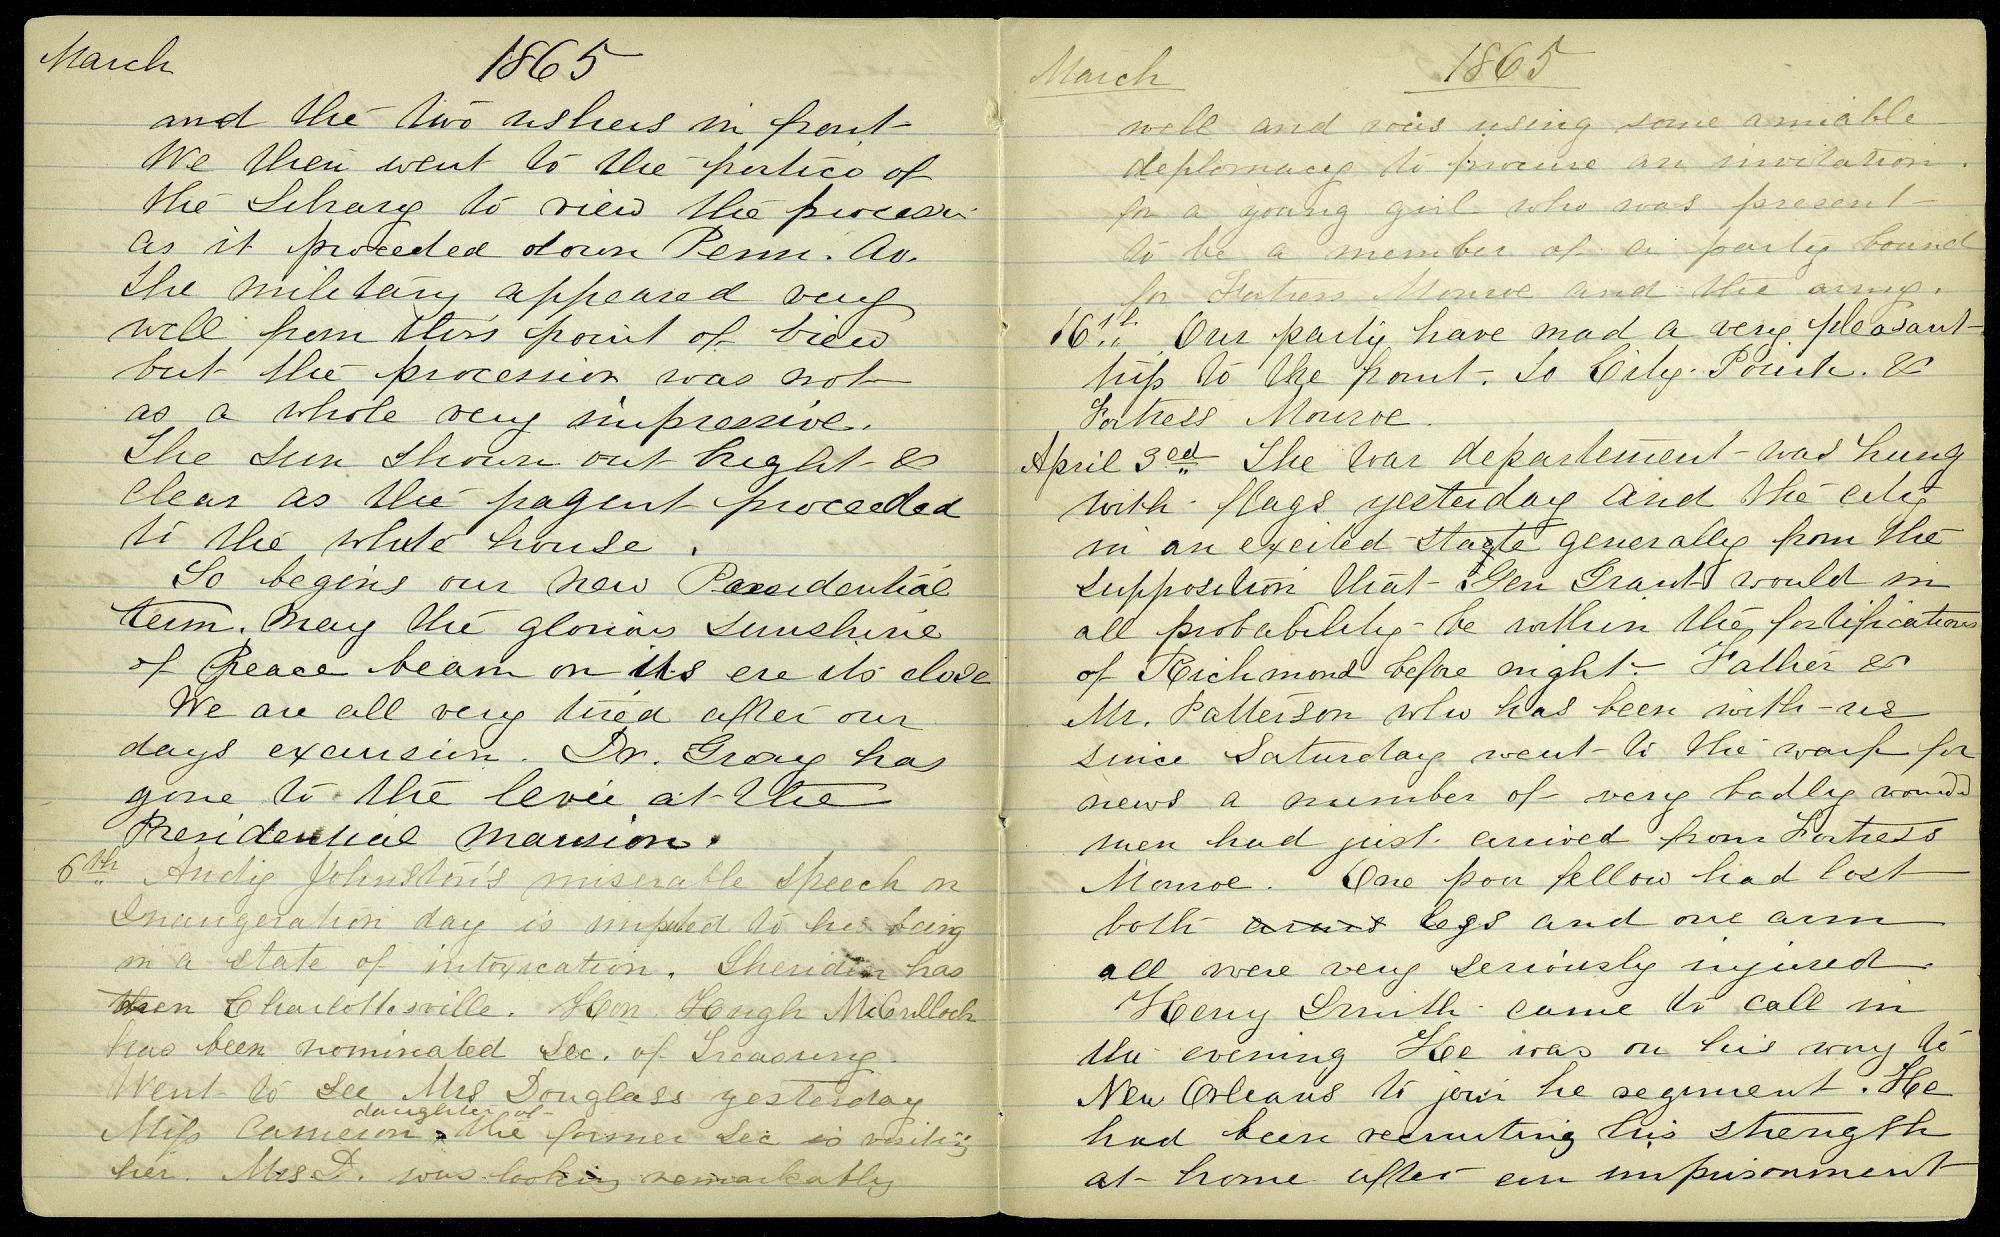 Mary Henry Diary Entry End of the Civil War, April 3-10, 1865